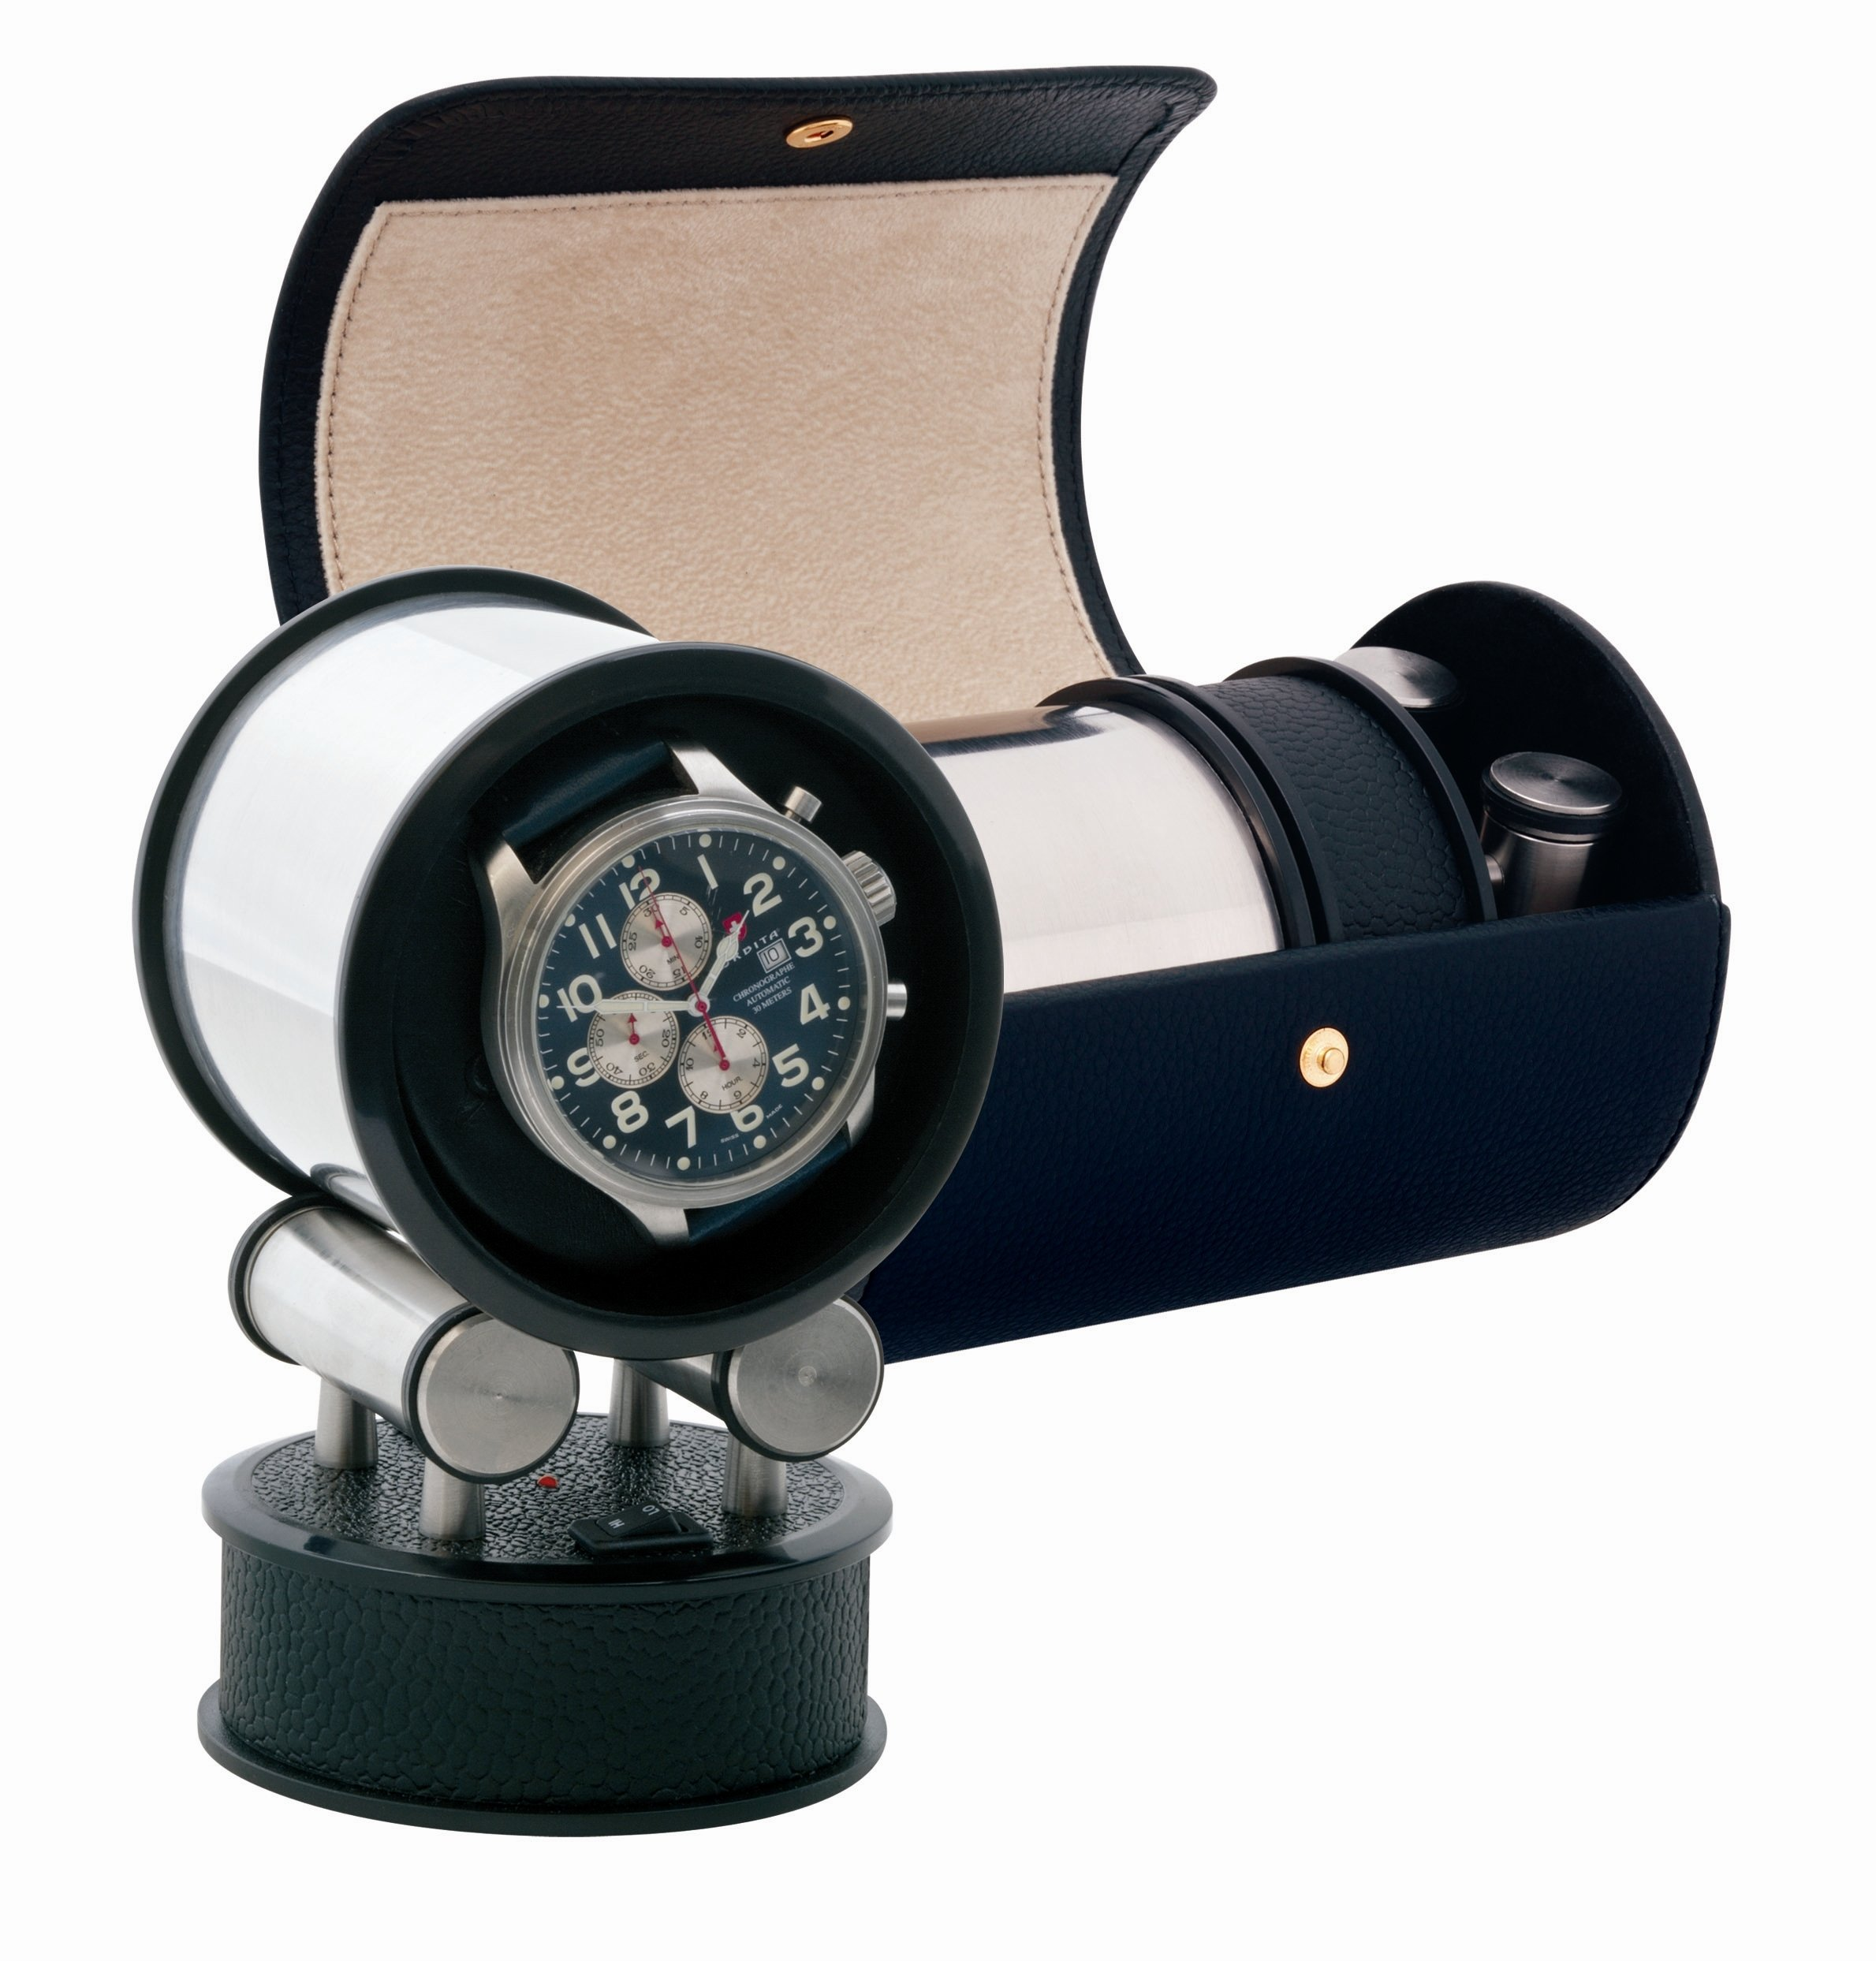 Orbita Voyager Watchwinder 1 by Orbita